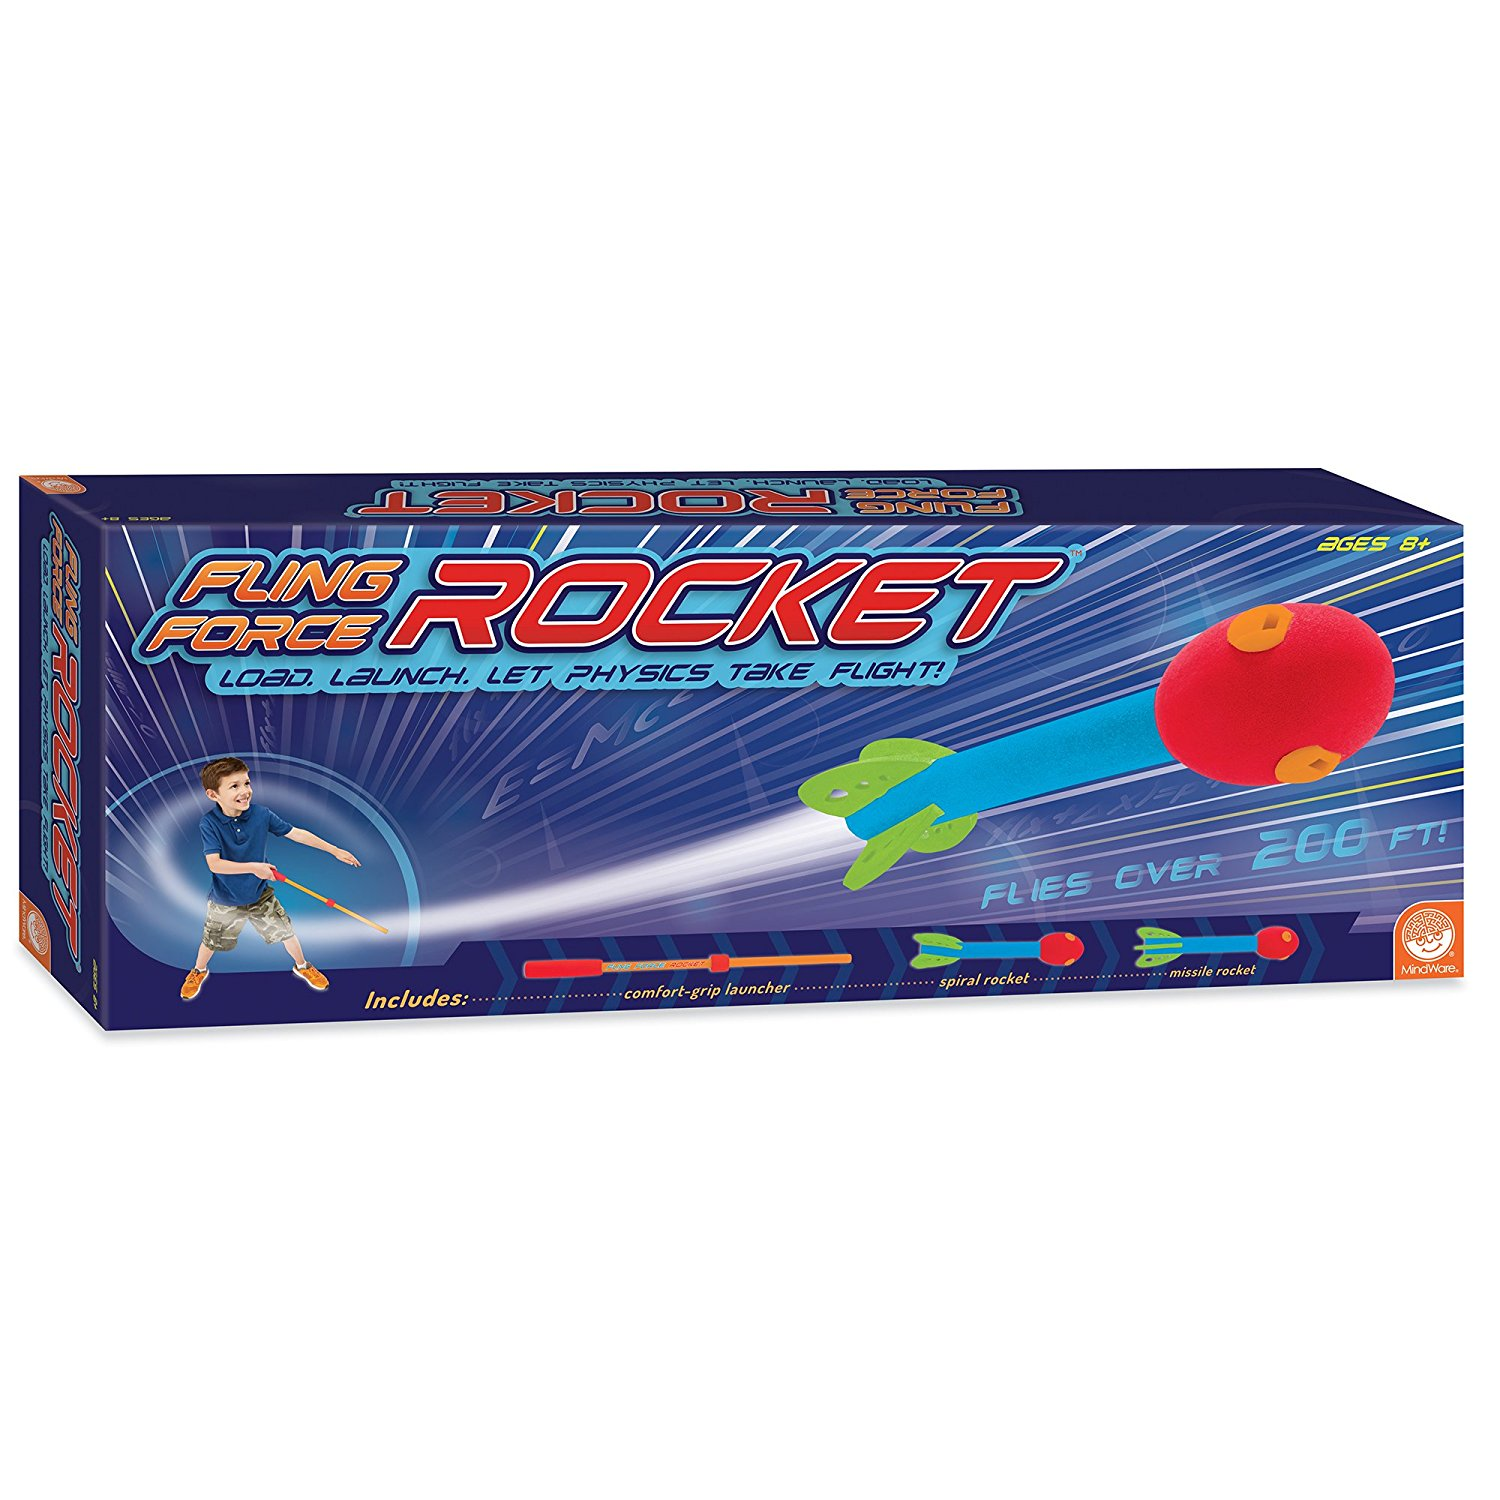 Fling Force Rocket, TOYS THAT TEACH: The Fling Force Rock...